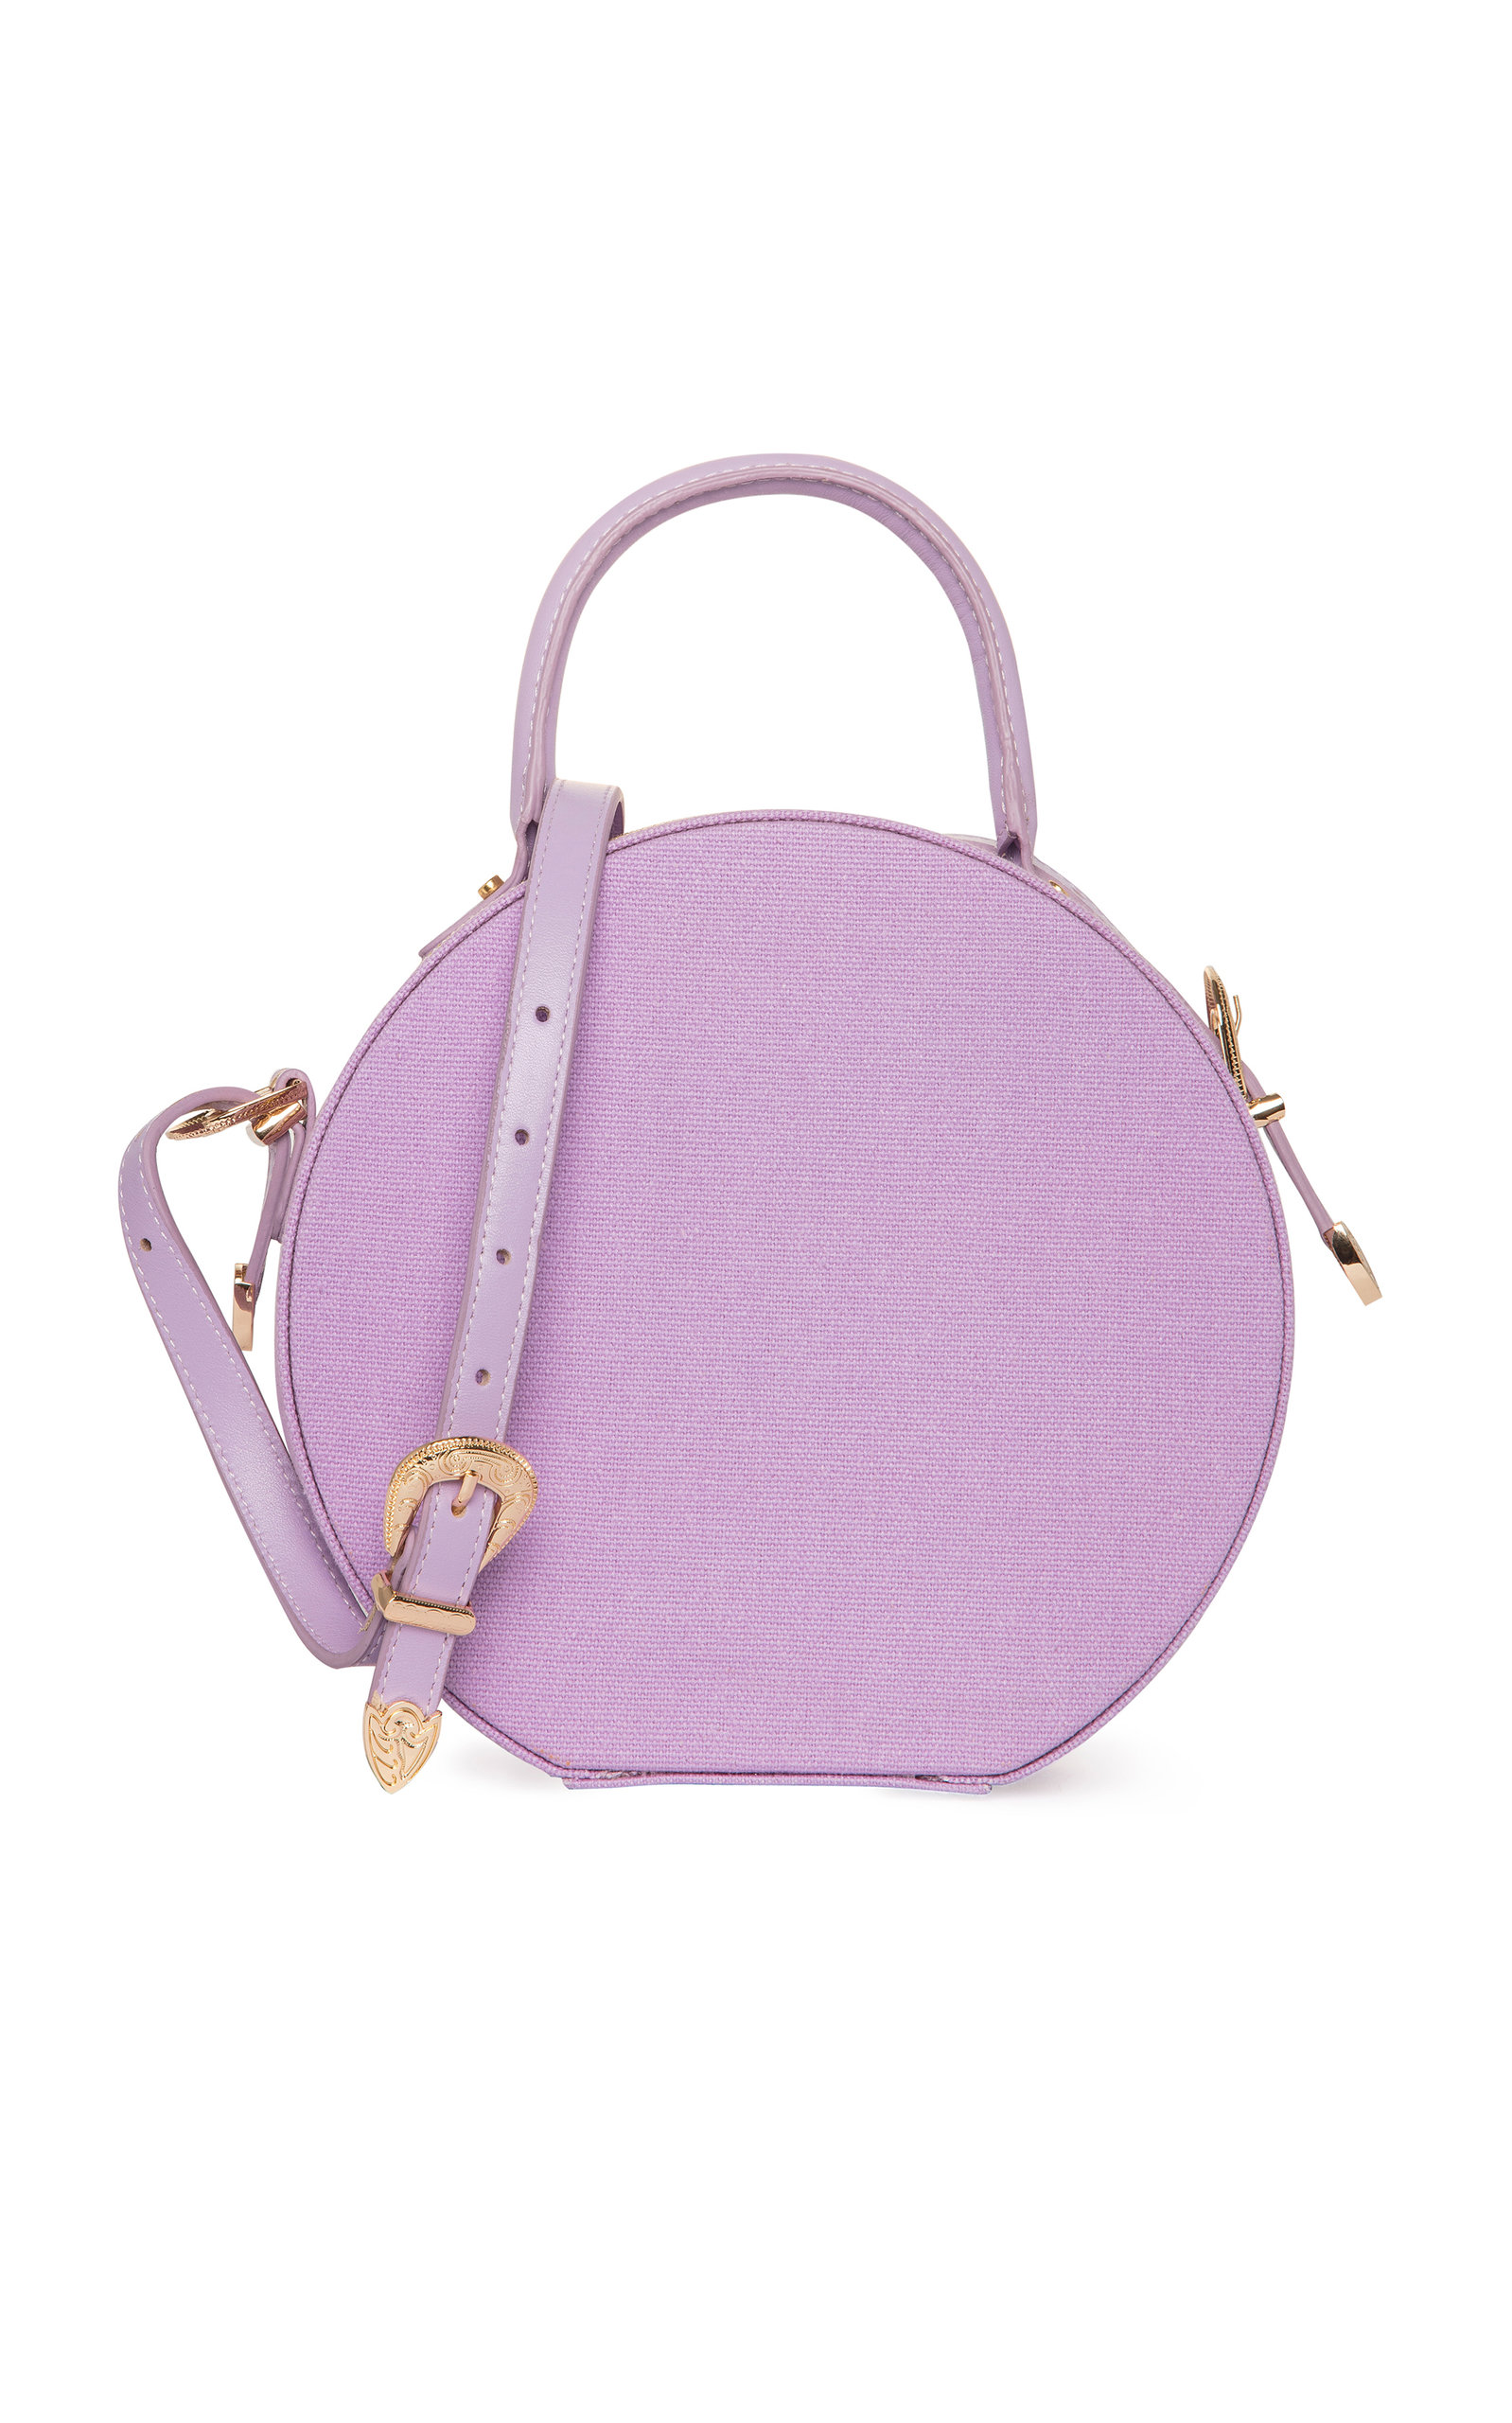 Alice Mccall Adeline Bag